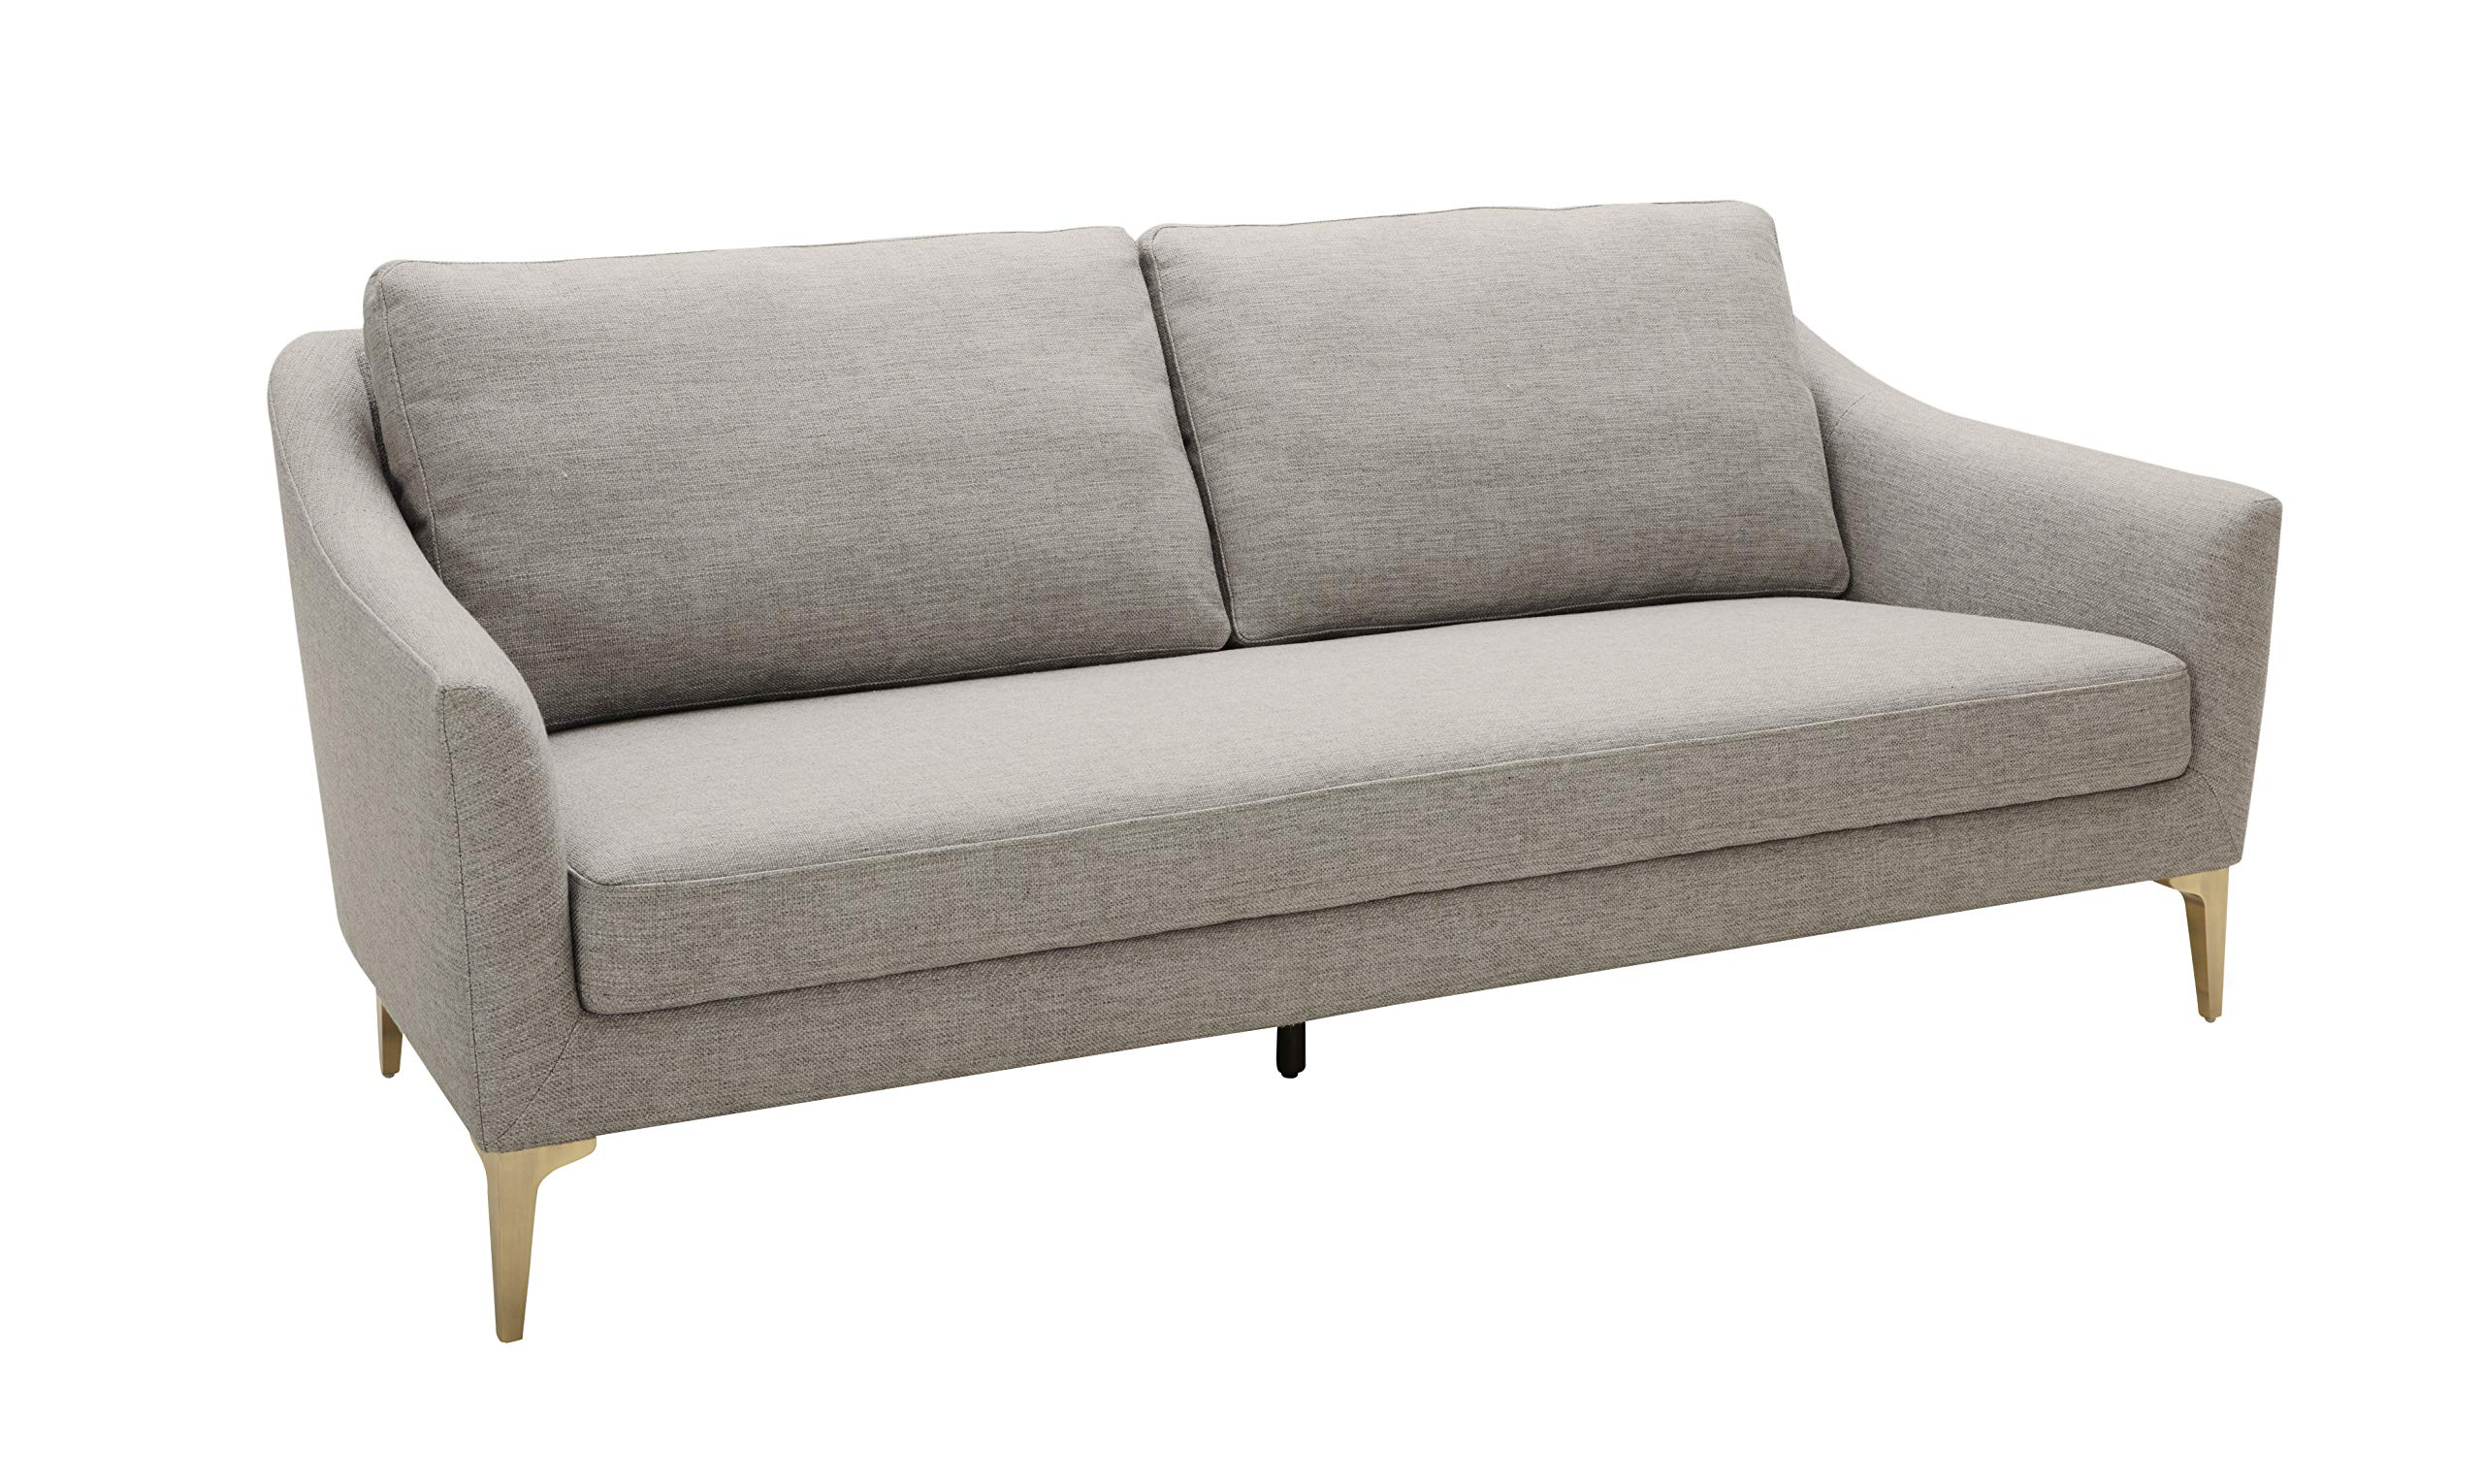 Rivet Alonzo Contemporary Modern Sofa Couch, 80''W, Grey by Rivet